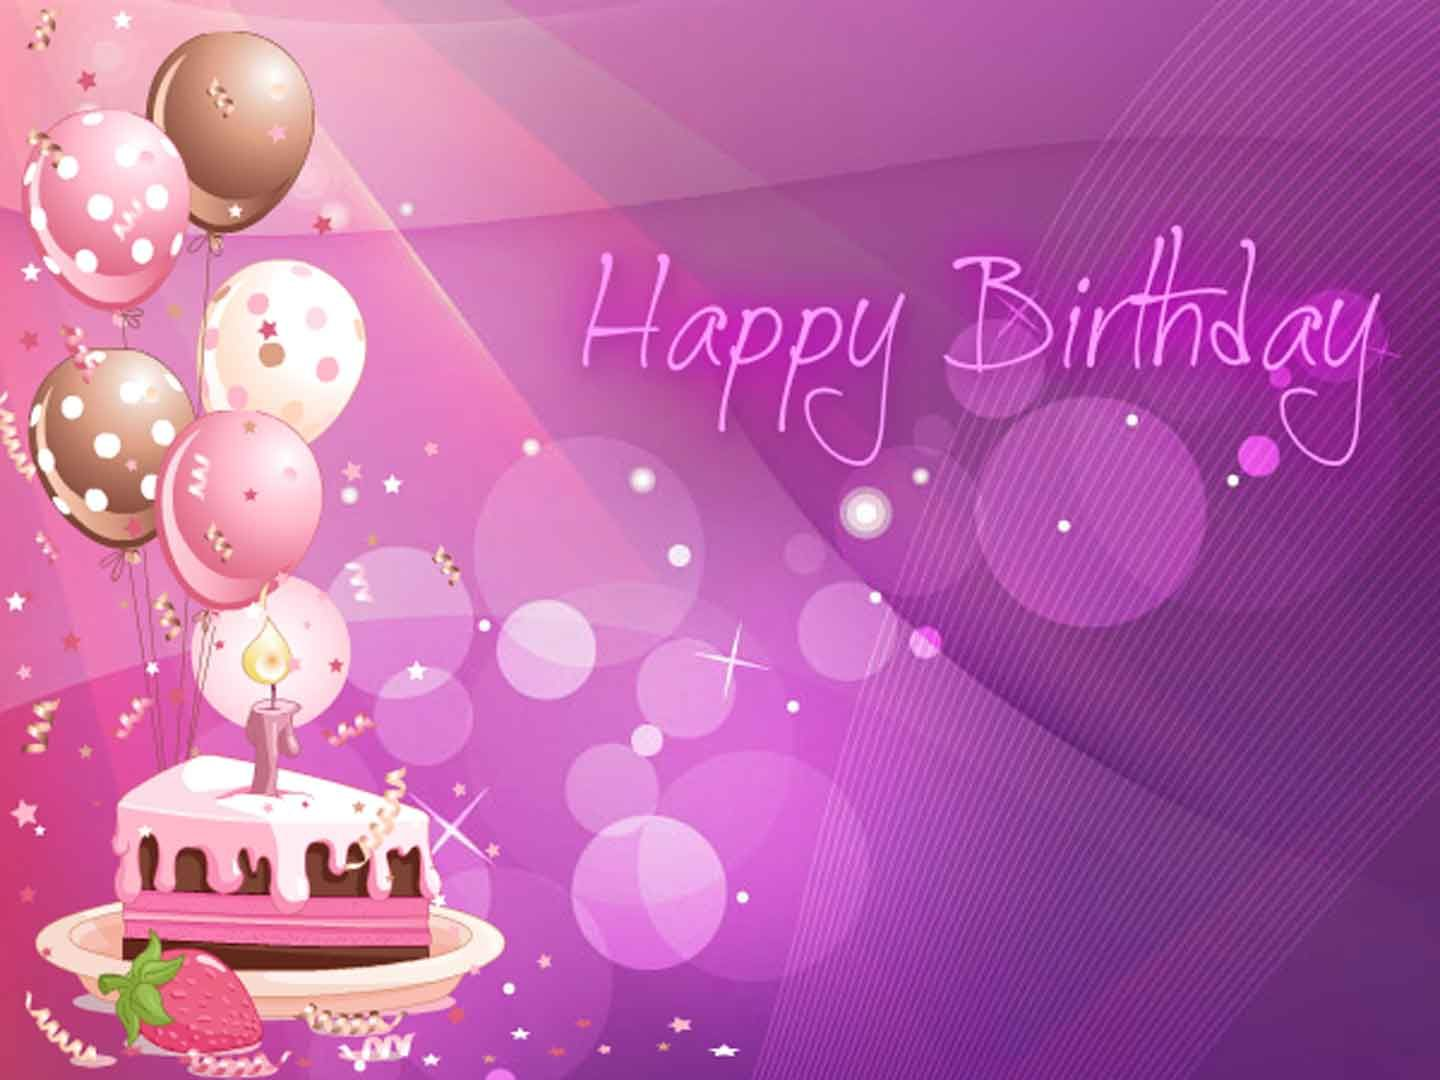 happy birthday wallpaper ; 976888c53a222c88da7598ae3f76ebae